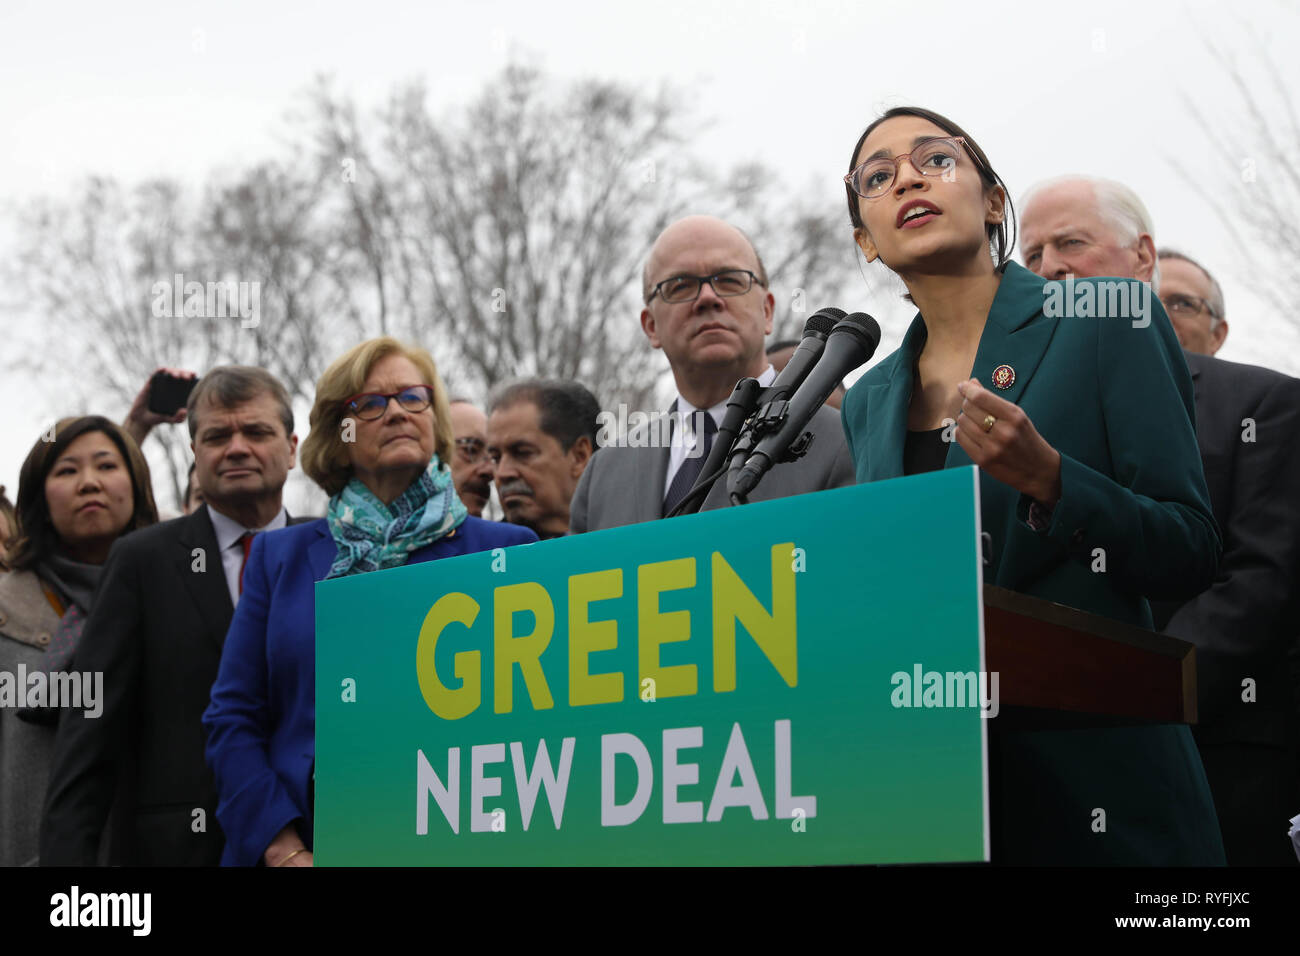 U.S. Rep. Alexandria Ocasio-Cortez of New York, along with other members of Congress announce the Green New Deal legislation during a press conference outside the Capitol Building February 7, 2019 in Washington, D.C. Stock Photo